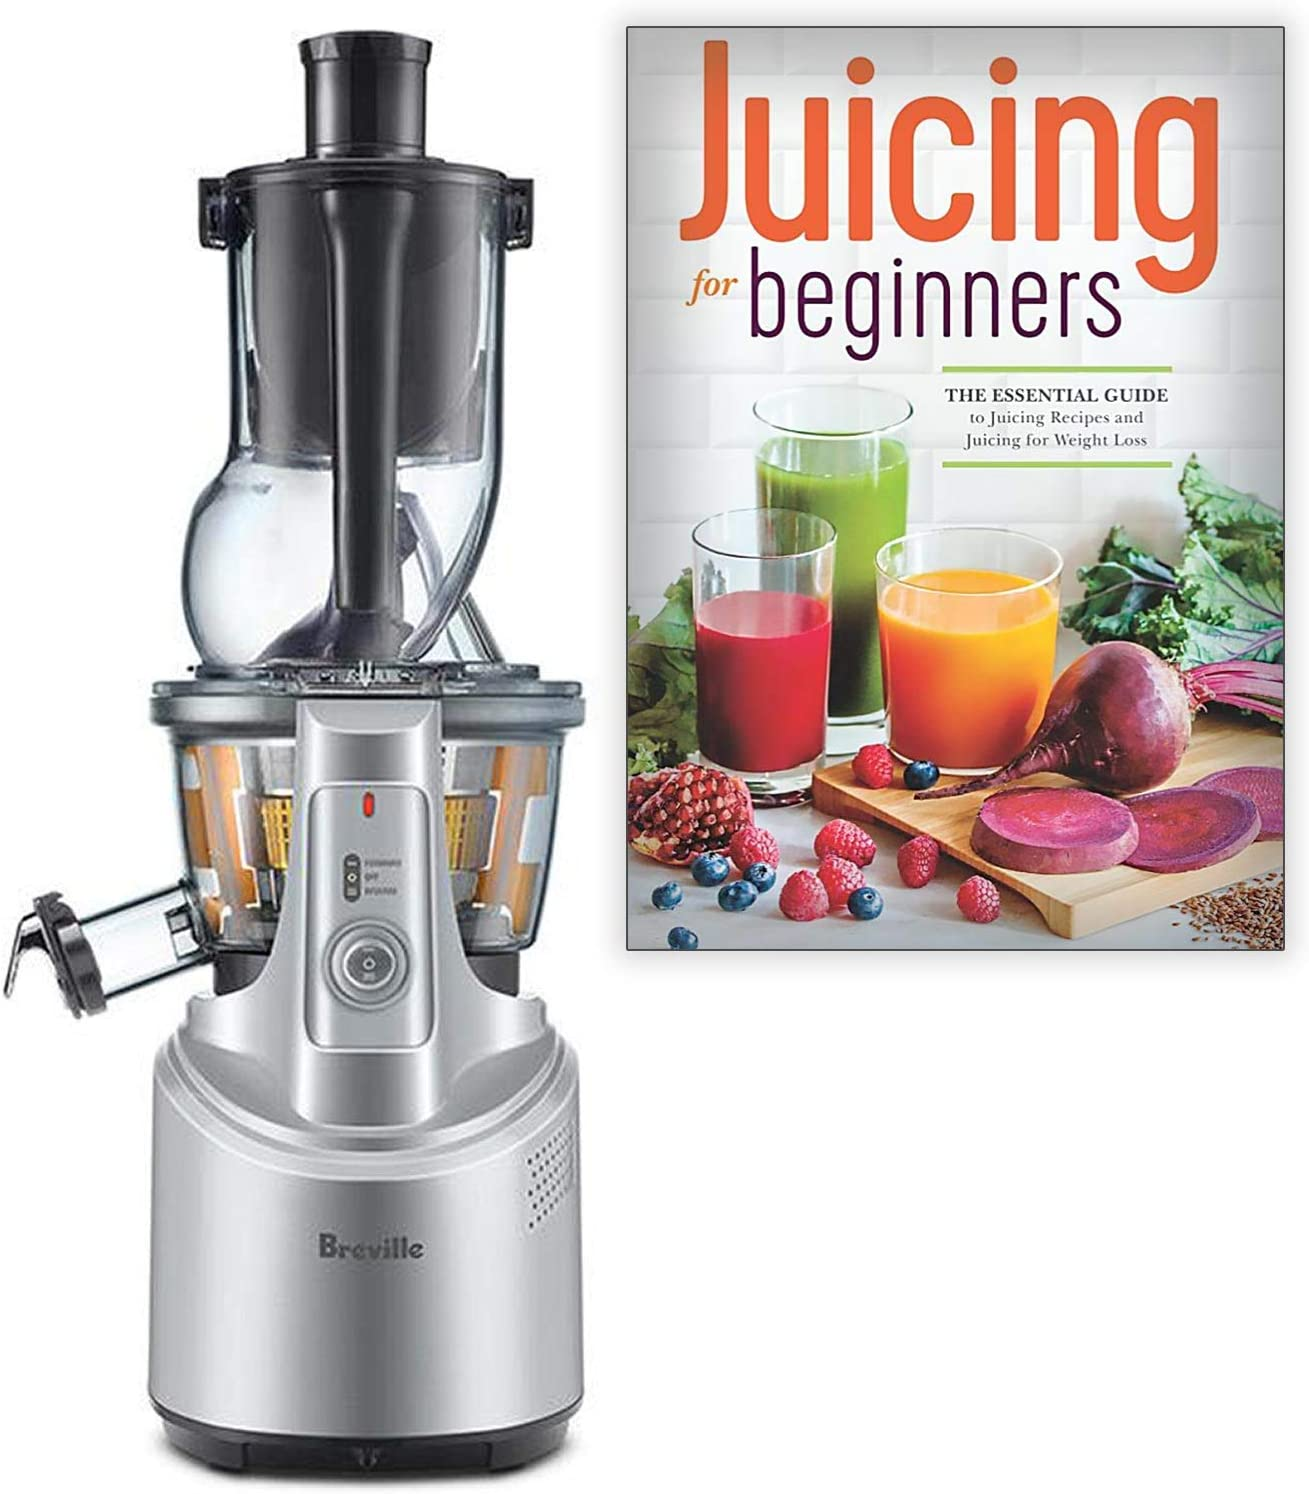 Breville BJS700SIL The Big Squeeze Slow Juicer Bundle with Juicing for Beginners Recipe Book: The Essential Guide to Juicing Recipes and Juicing for Weight Loss - Silver